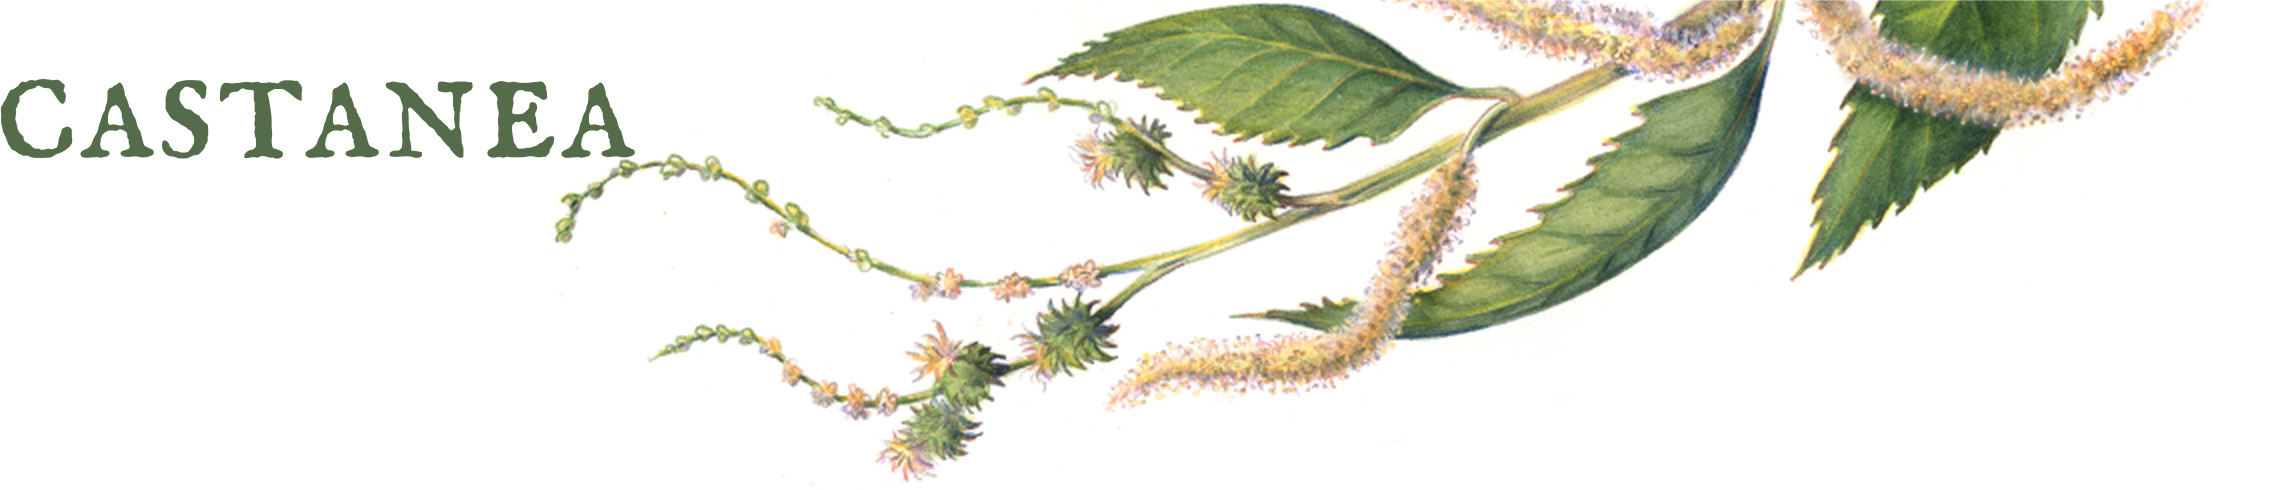 Chestnut Herbal School